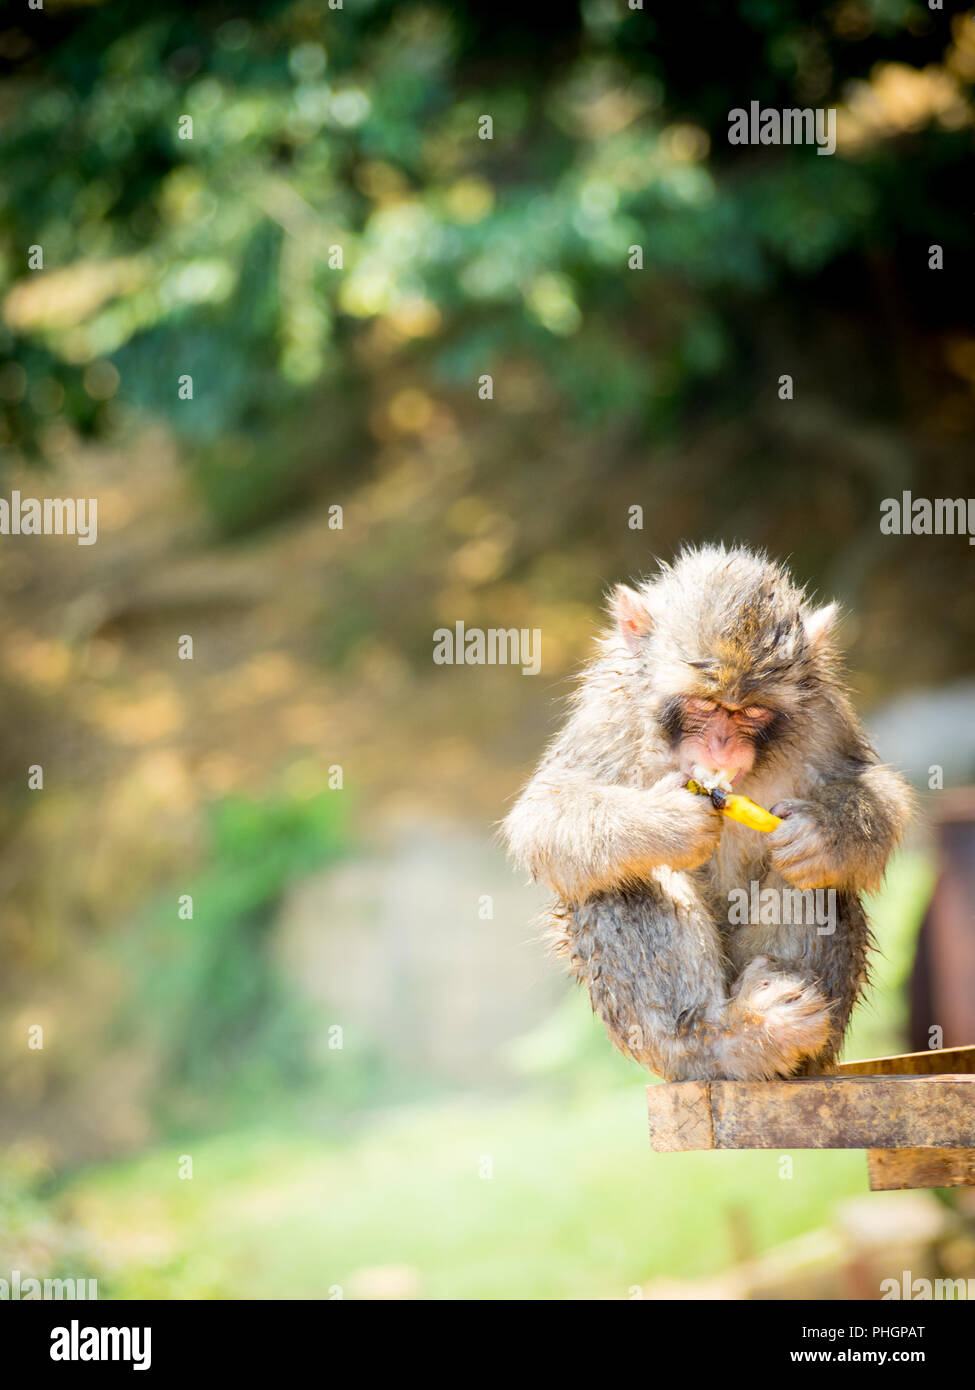 A juvenile Japanese macaque (Macaca fuscata), a.k.a. snow monkey, eats a banana at Iwatayama Monkey Park on Mount Arashiyama, Arashiyama, Kyoto, Japan Stock Photo